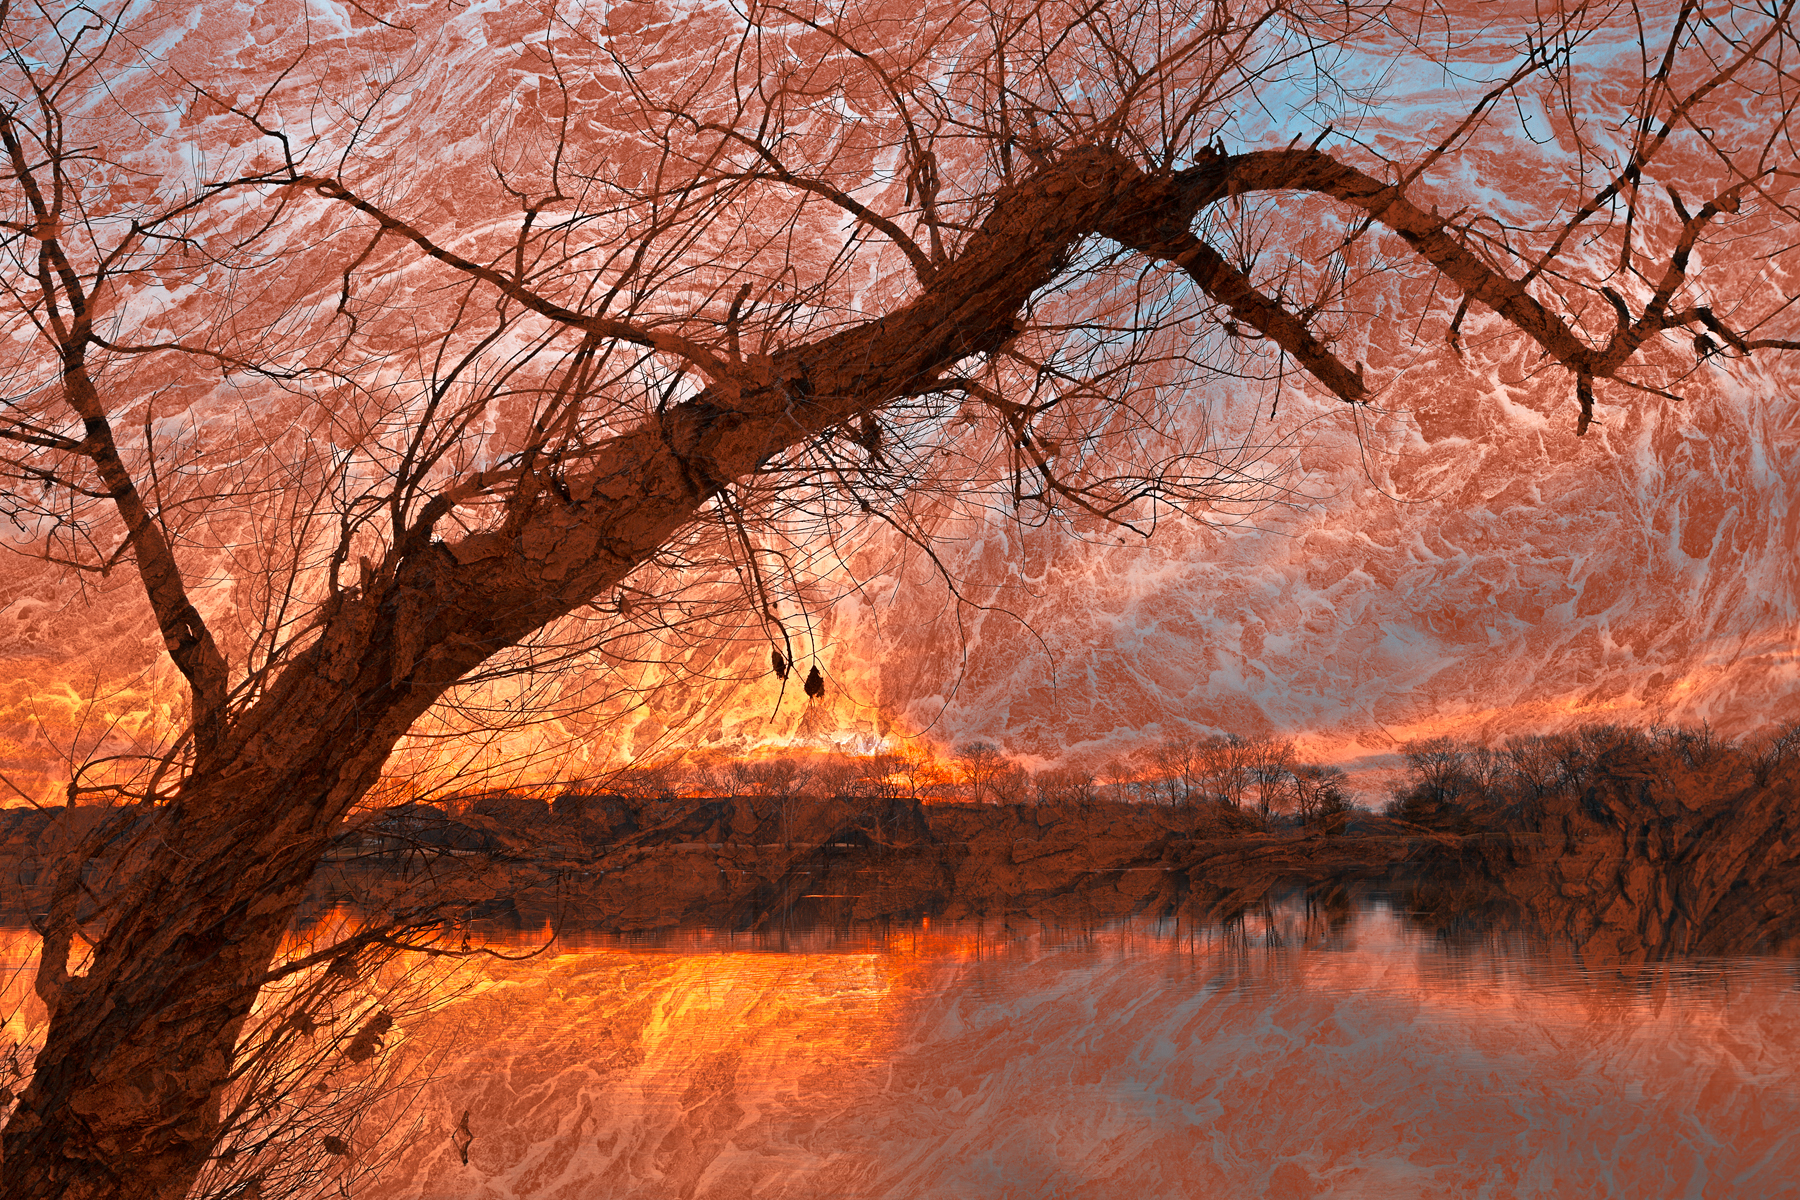 River Wood Sunset, Reflection, Sky, Shadows, Shadow, HQ Photo